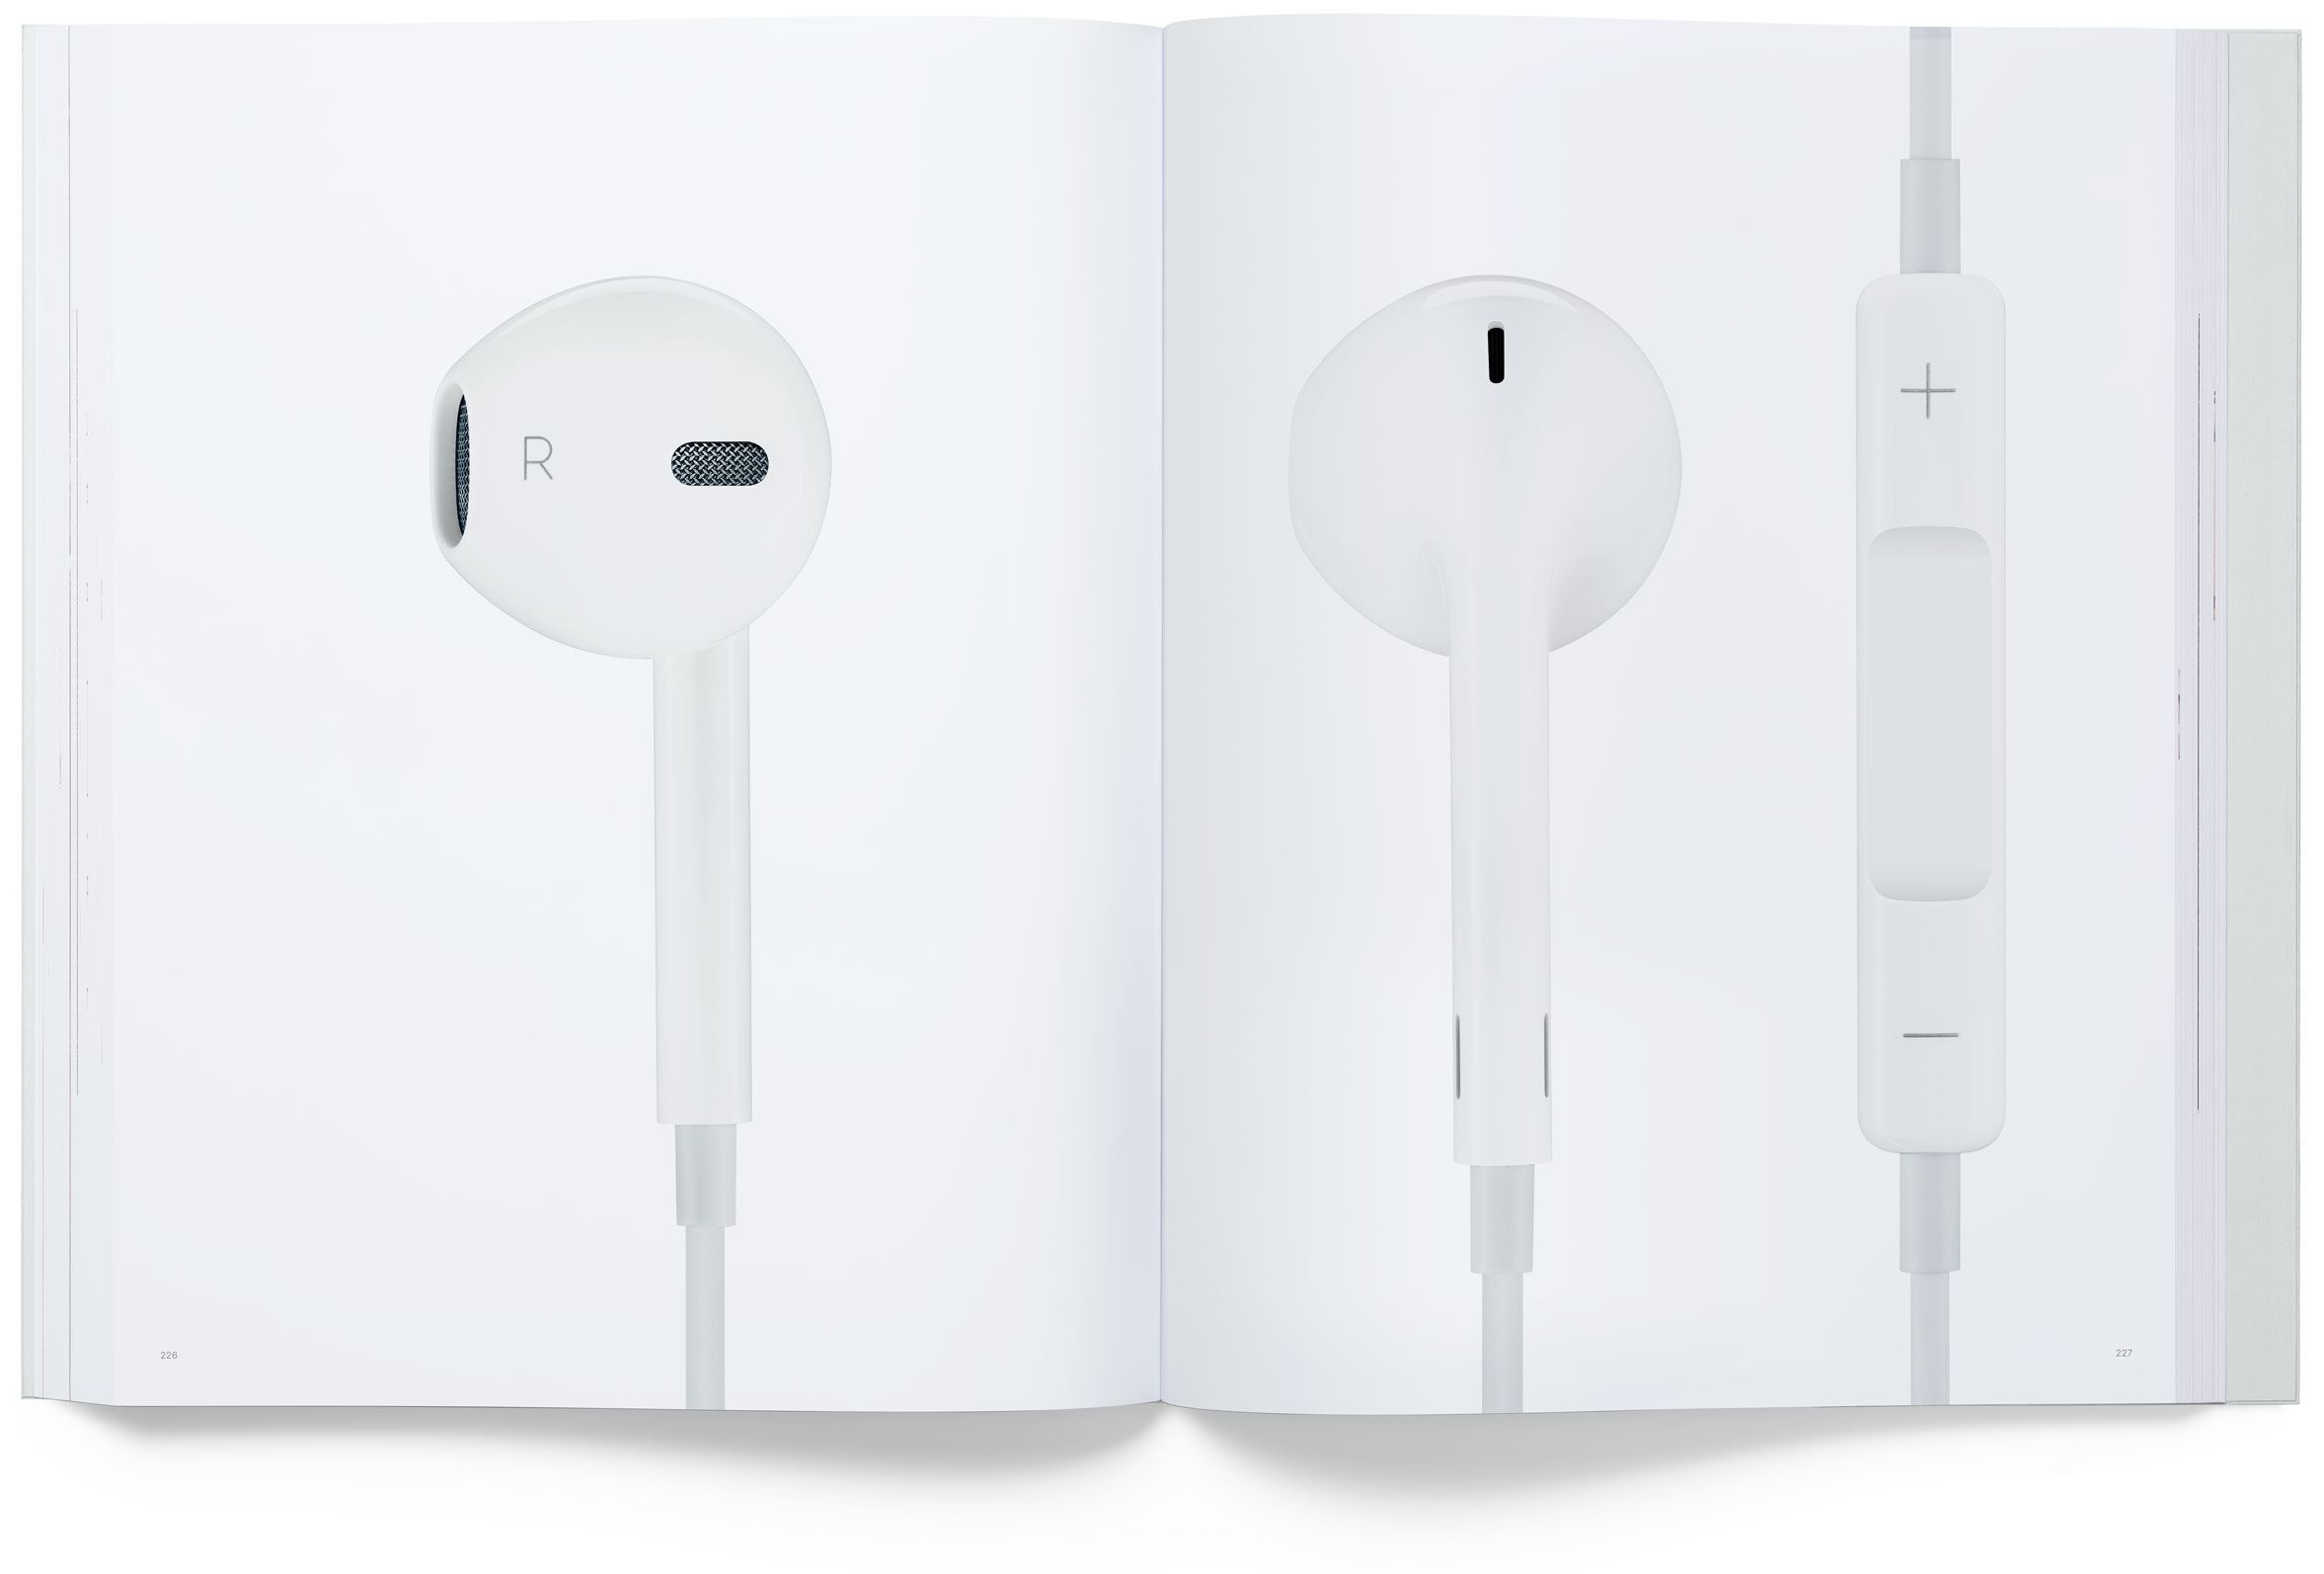 Libro Apple Designed By Apple In California Nuevo Libro Sobre Diseño